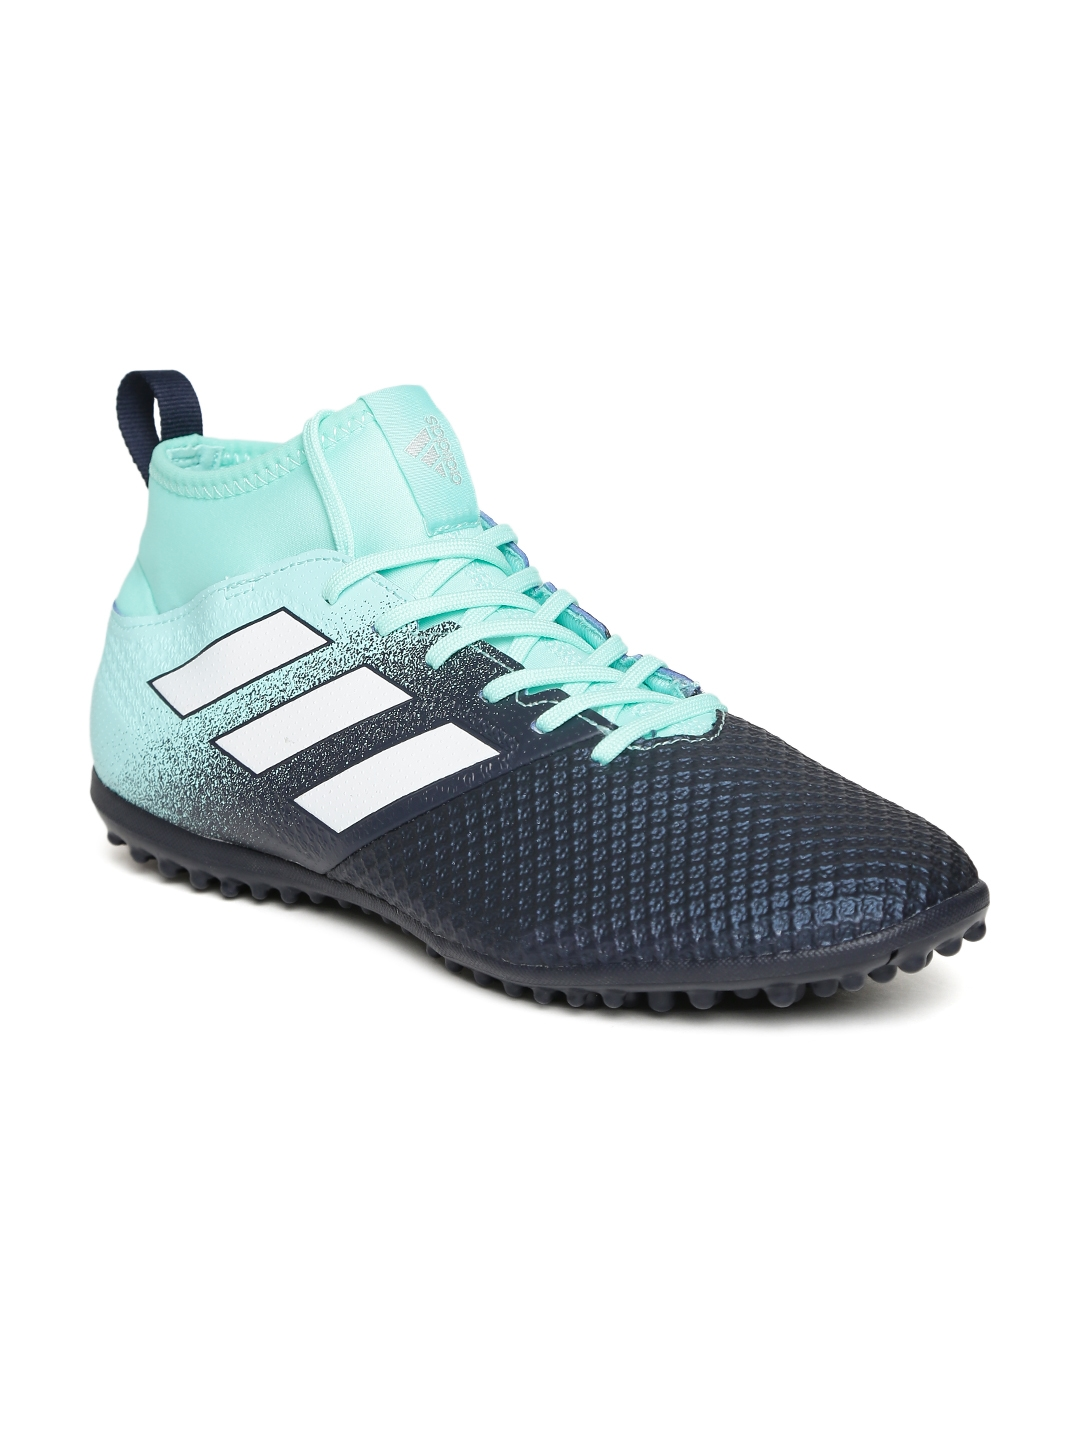 outlet store c48f9 c6dd8 ADIDAS Men Navy   Mint Green ACE TANGO 17.3 TF Football Shoes